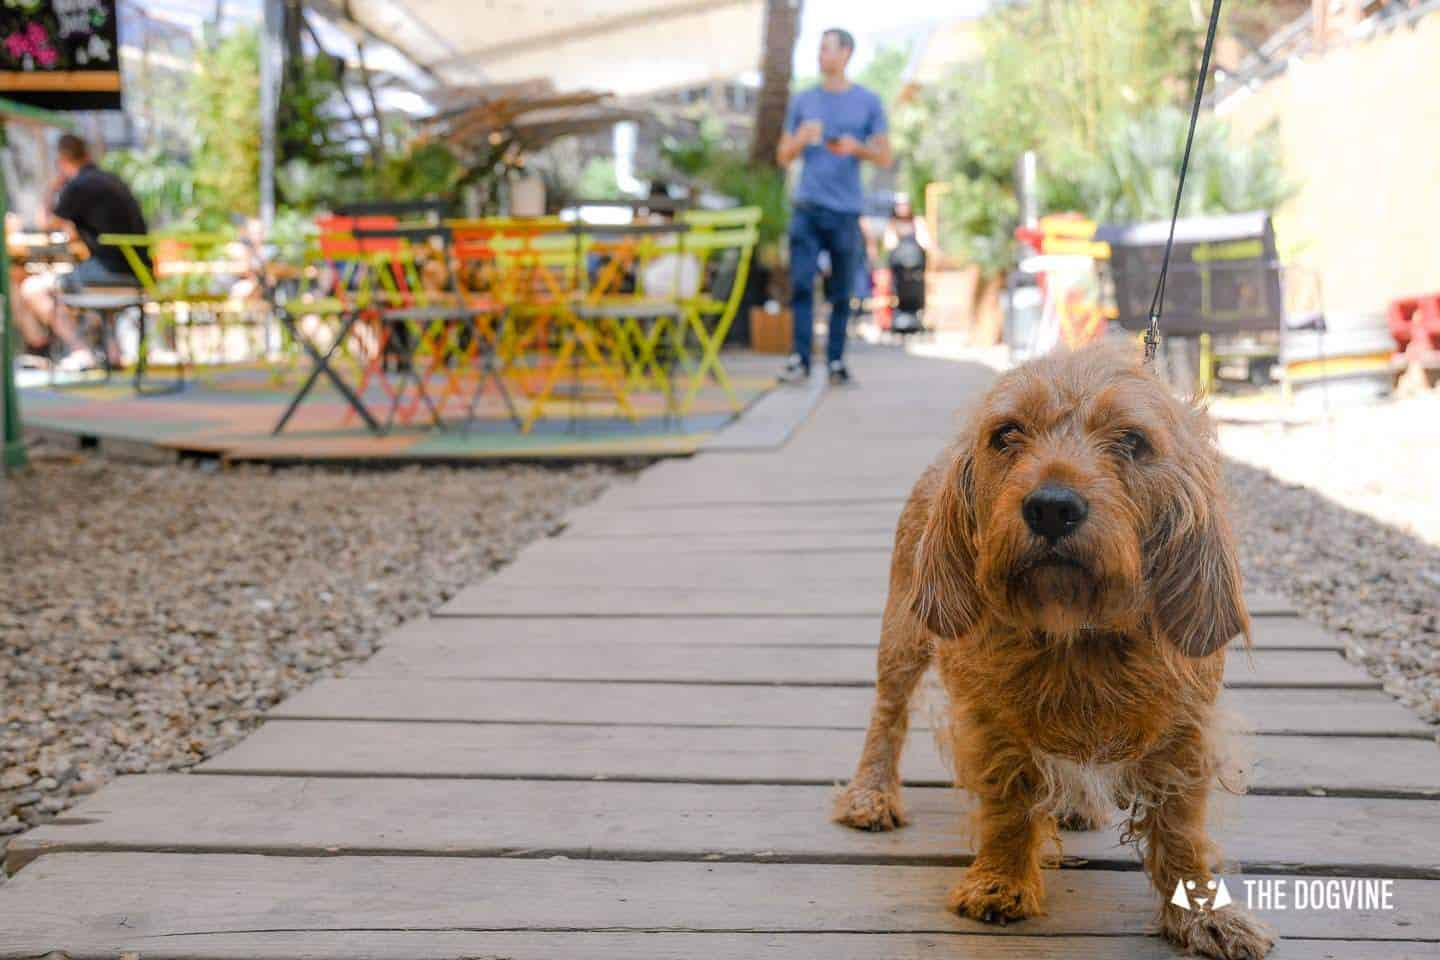 My Dog Friendly London By Amber - Dog Friendly Elephant & Castle - Mercato Metropolitano 14